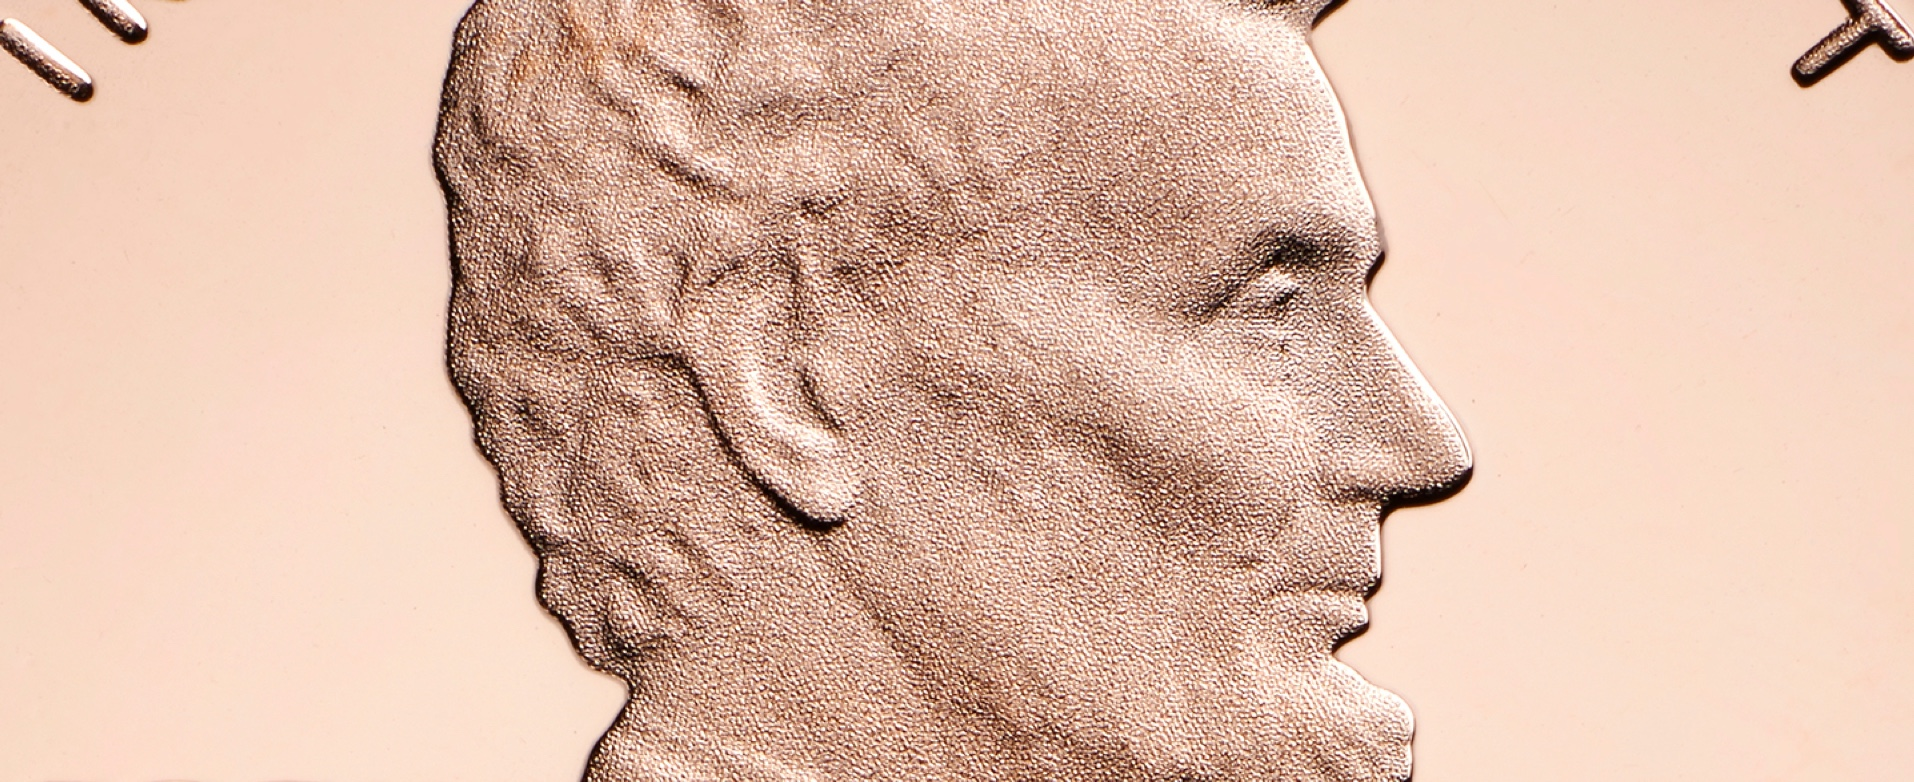 What the Lincoln Penny can teach us about leadership